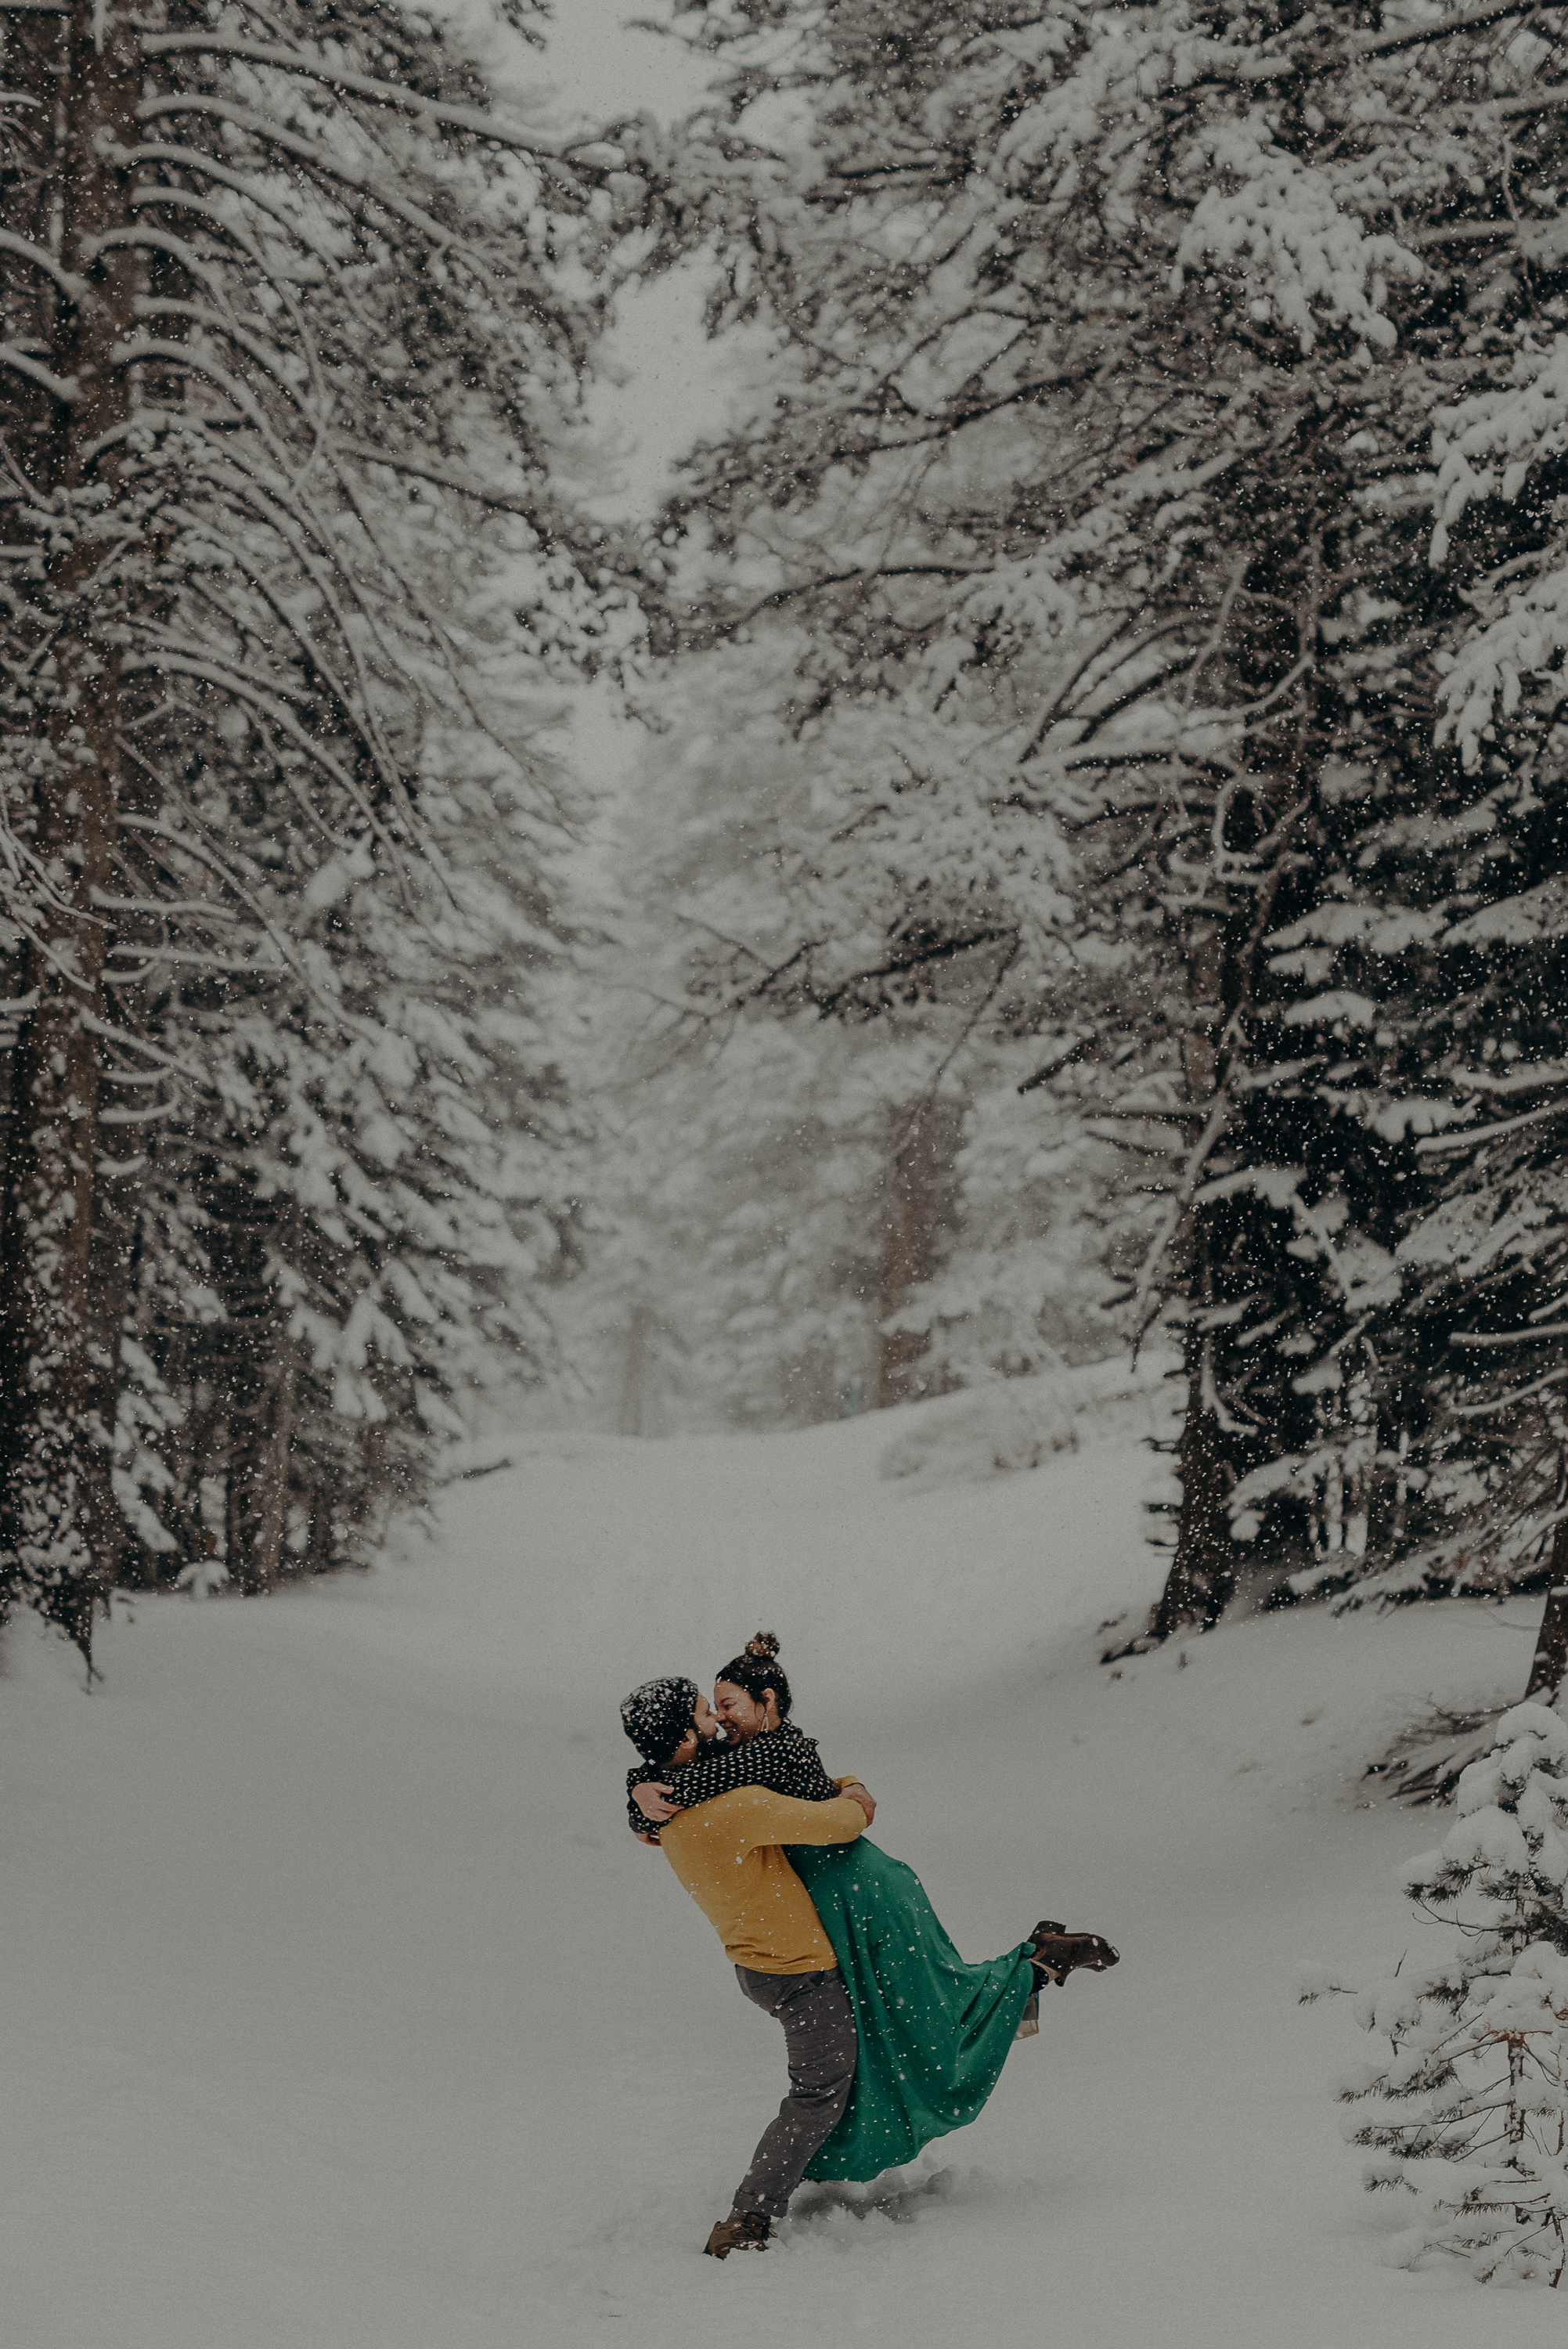 ©Isaiah + Taylor Photography - Los Angeles Wedding Photographer - Snowing engagement session-018.jpg